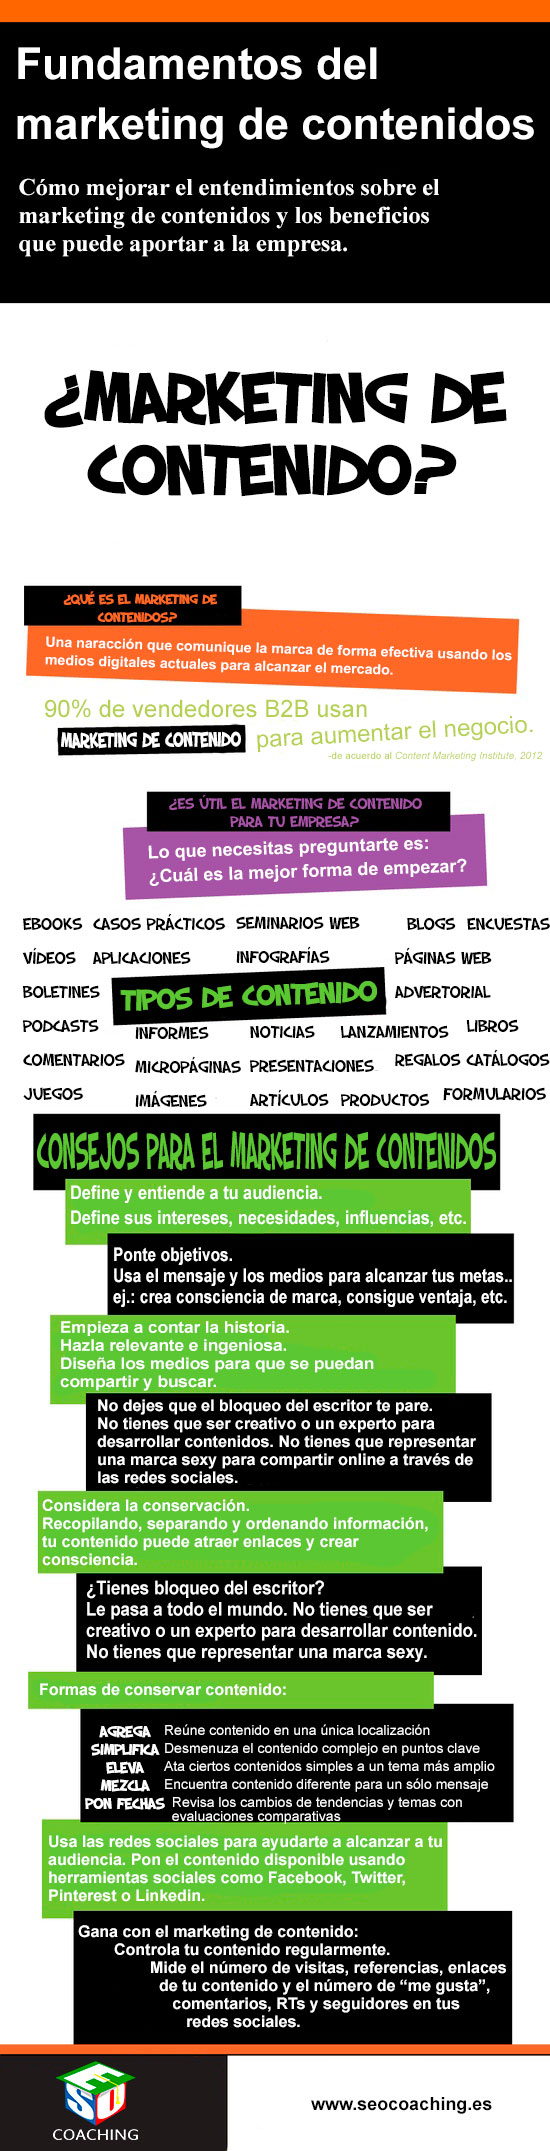 http://alfredovela.files.wordpress.com/2013/07/inforgafia_fundamentos_del_marketing_de_contenidos.jpg?w=714